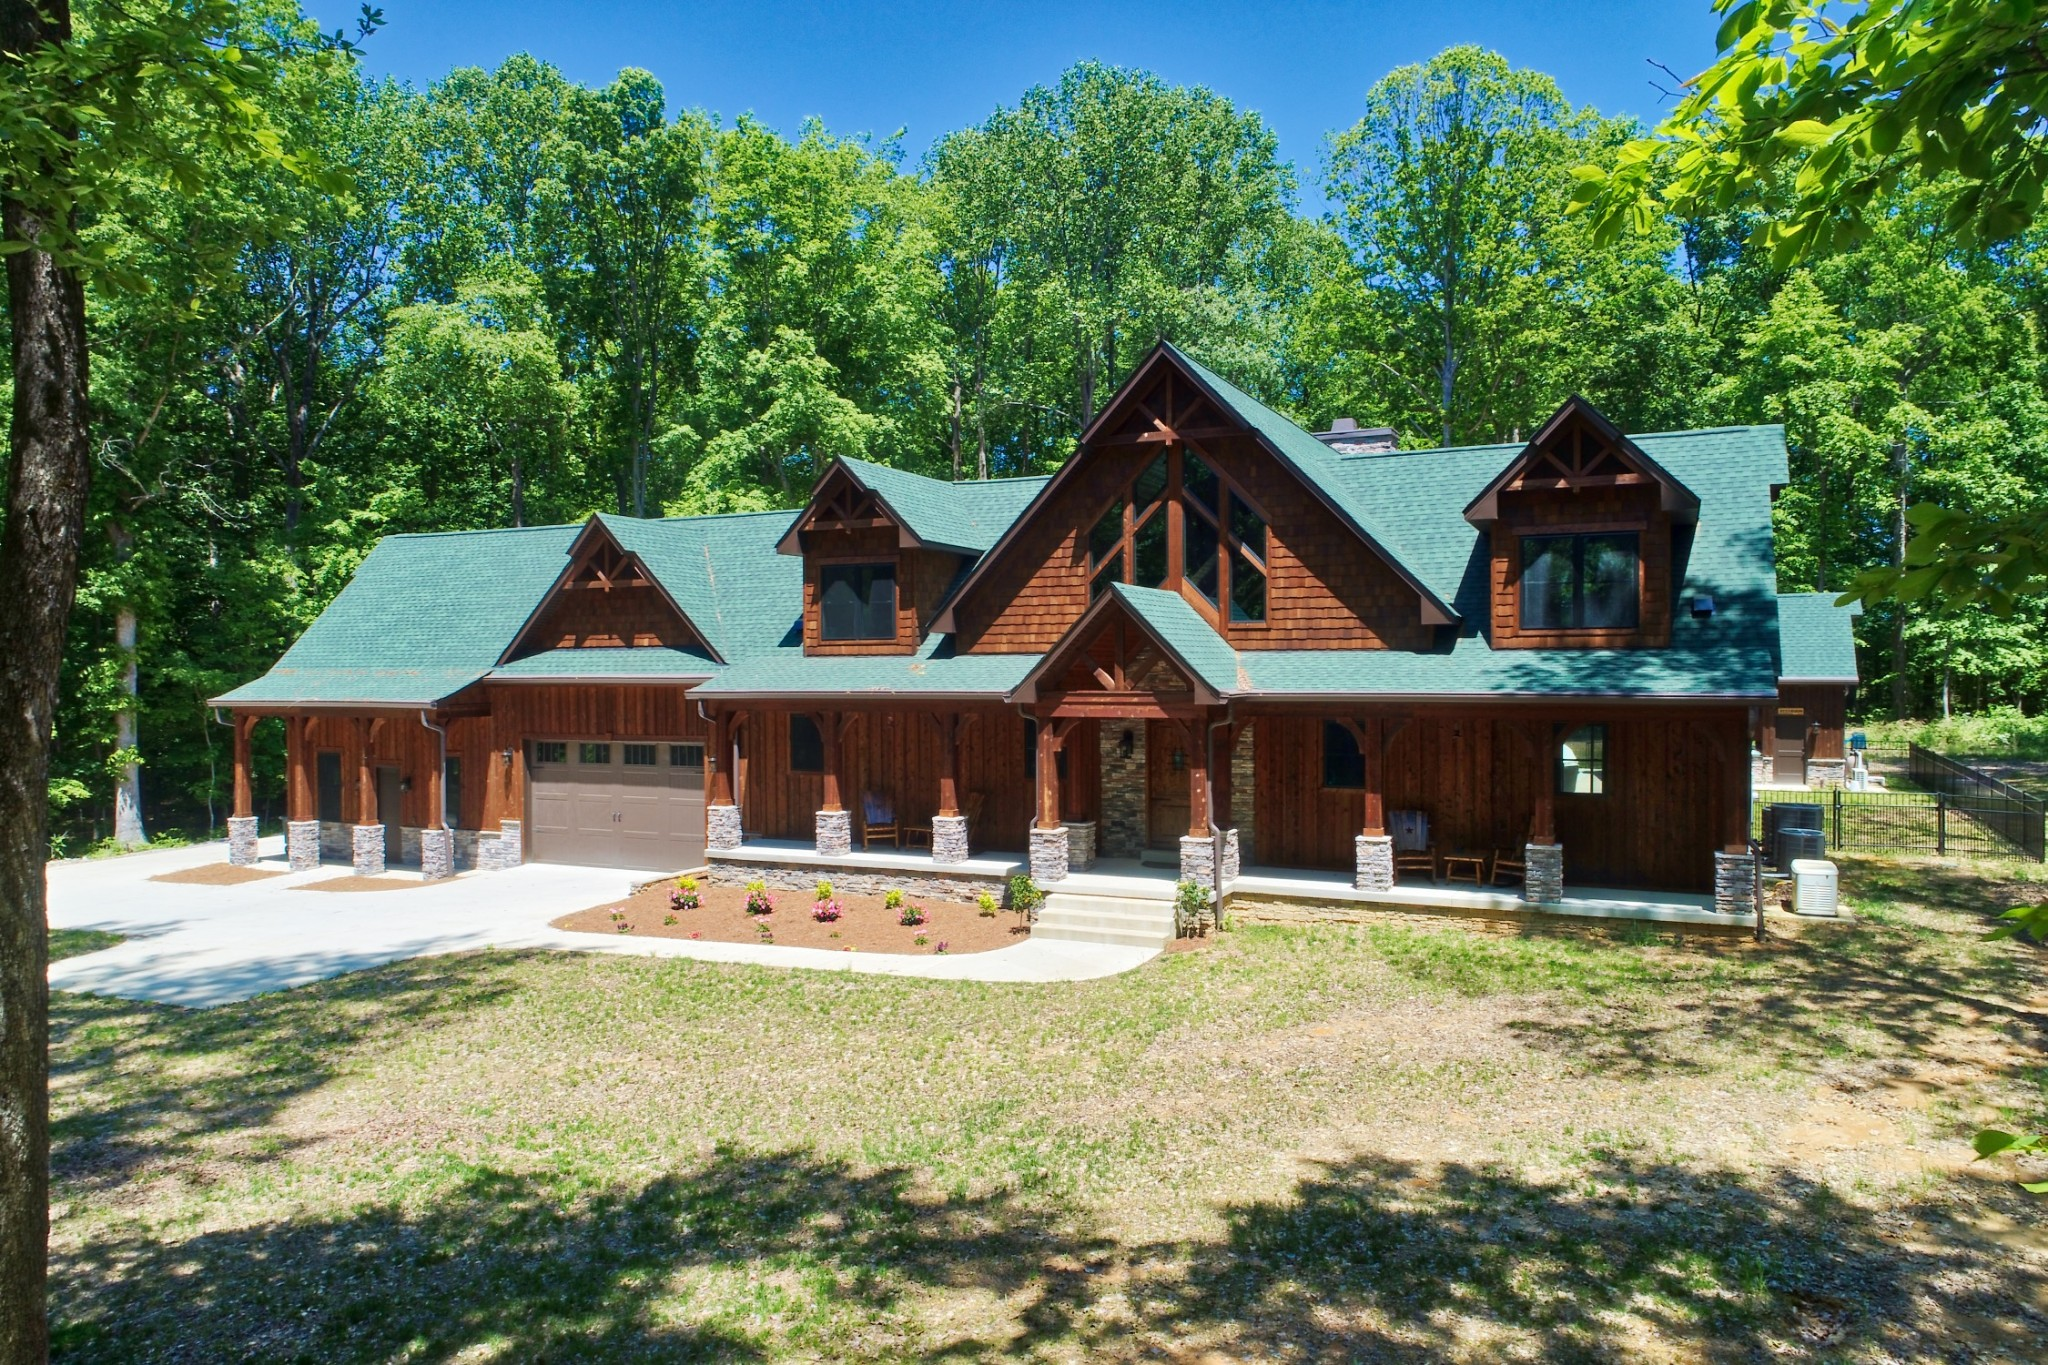 391 Fern Valley Rd Property Photo - White House, TN real estate listing